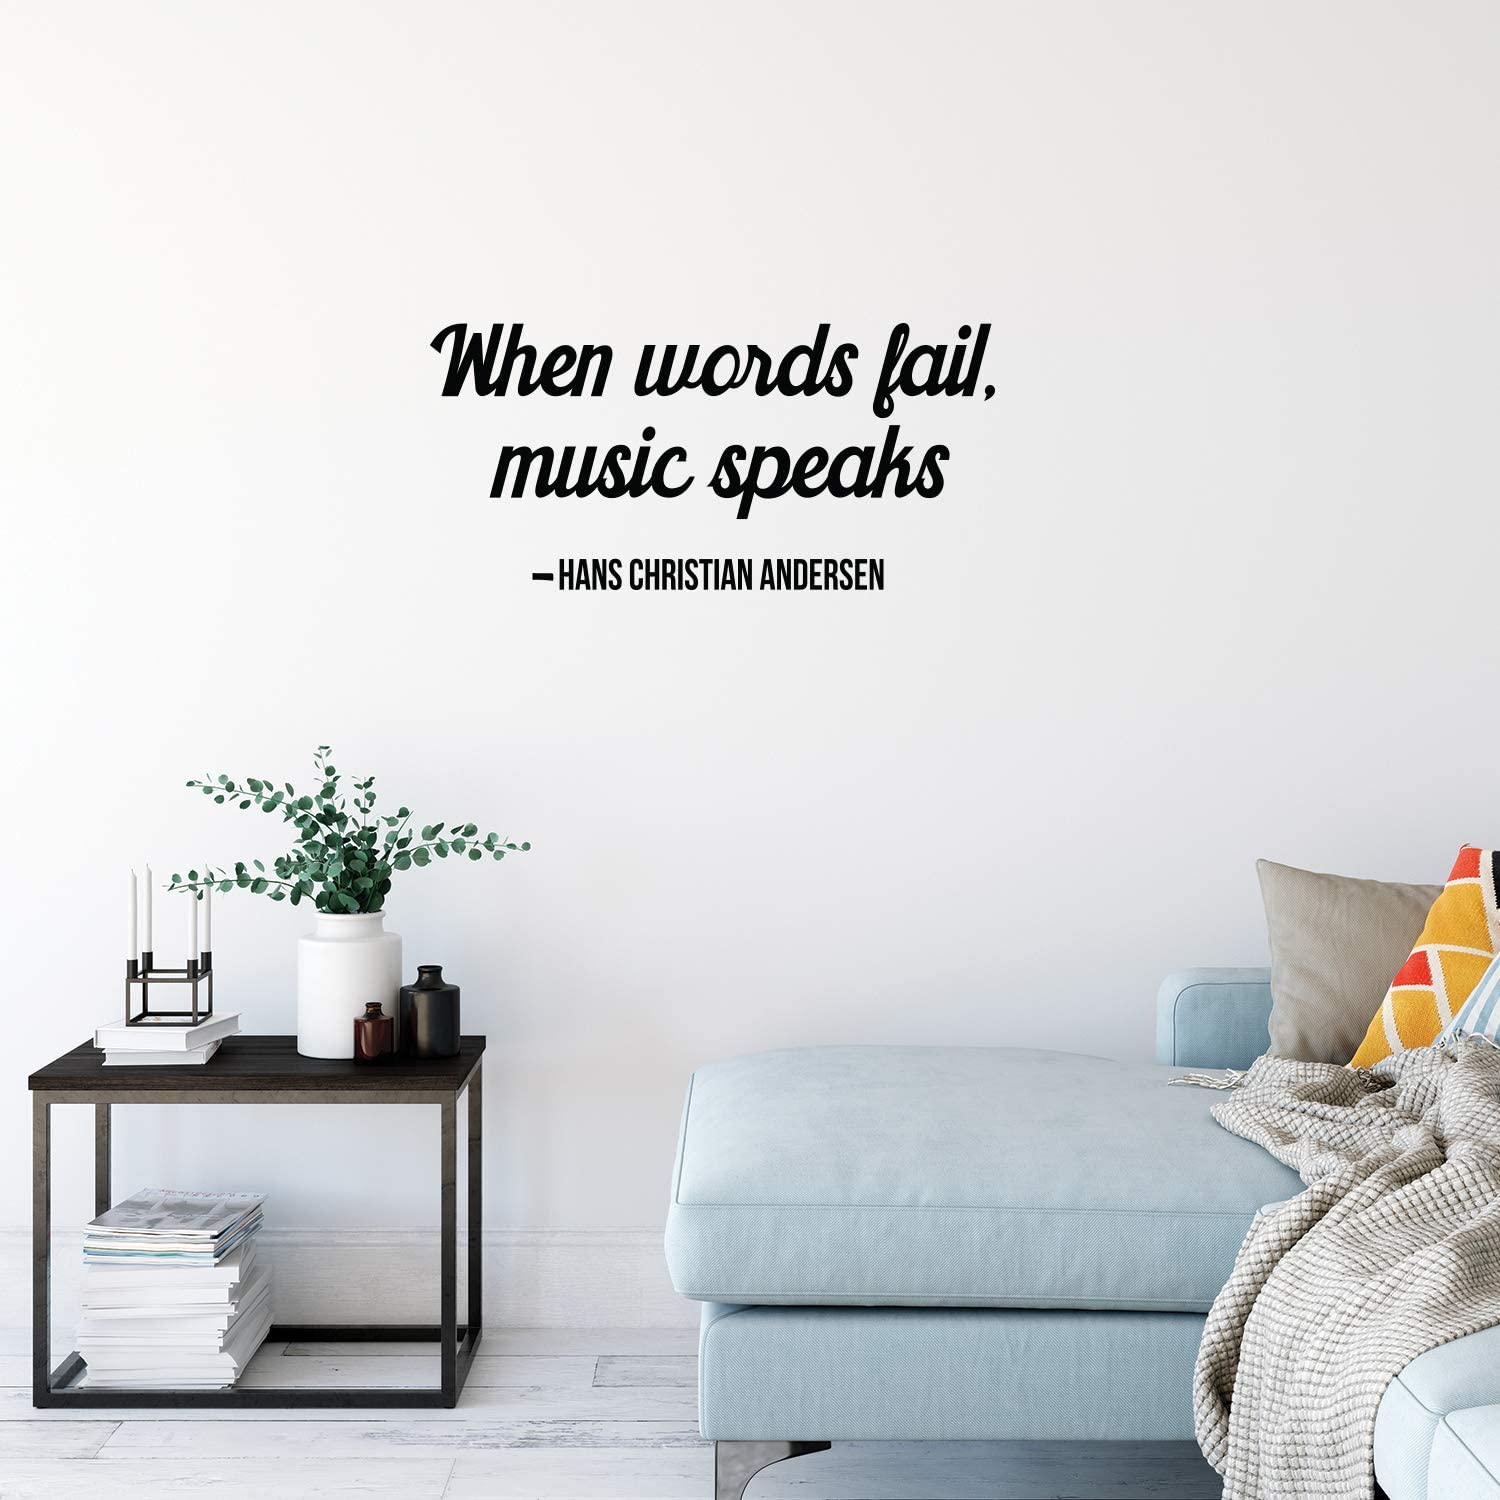 """Vinyl Wall Art Decal - When Words Fail, Music Speaks - 14"""" x 30"""" - Hans Christian Andersen Poetry Peel Off Vinyl Sticker Gifts for Home Office Living Room Kitchen Apartment Wall Decoration"""